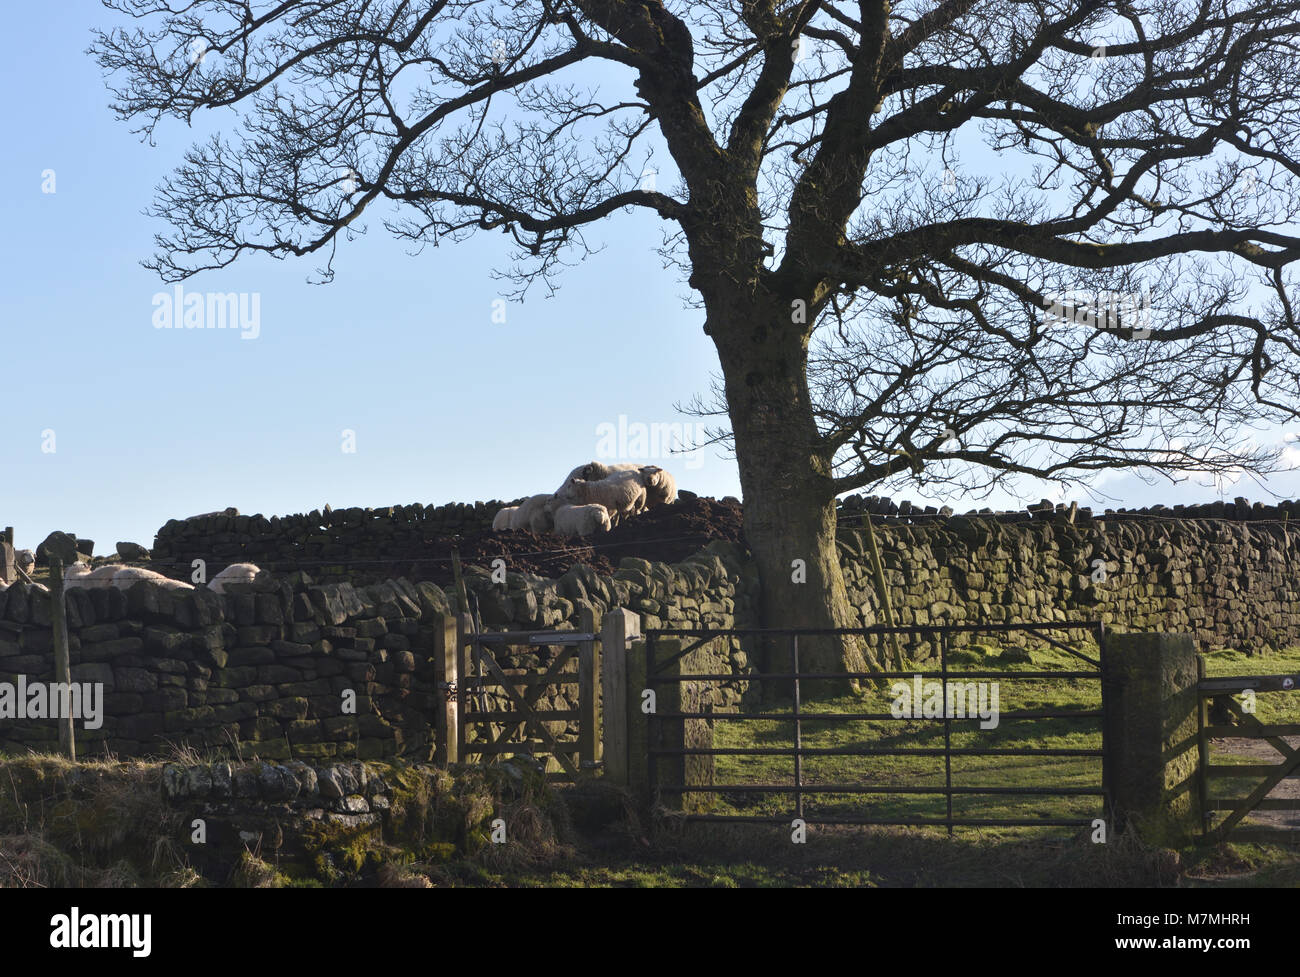 Sheep, dry stone walls and an ancient sycamore tree (Acer pseudoplatanus)  in winter sunshine below  Froggatt Edge. - Stock Image